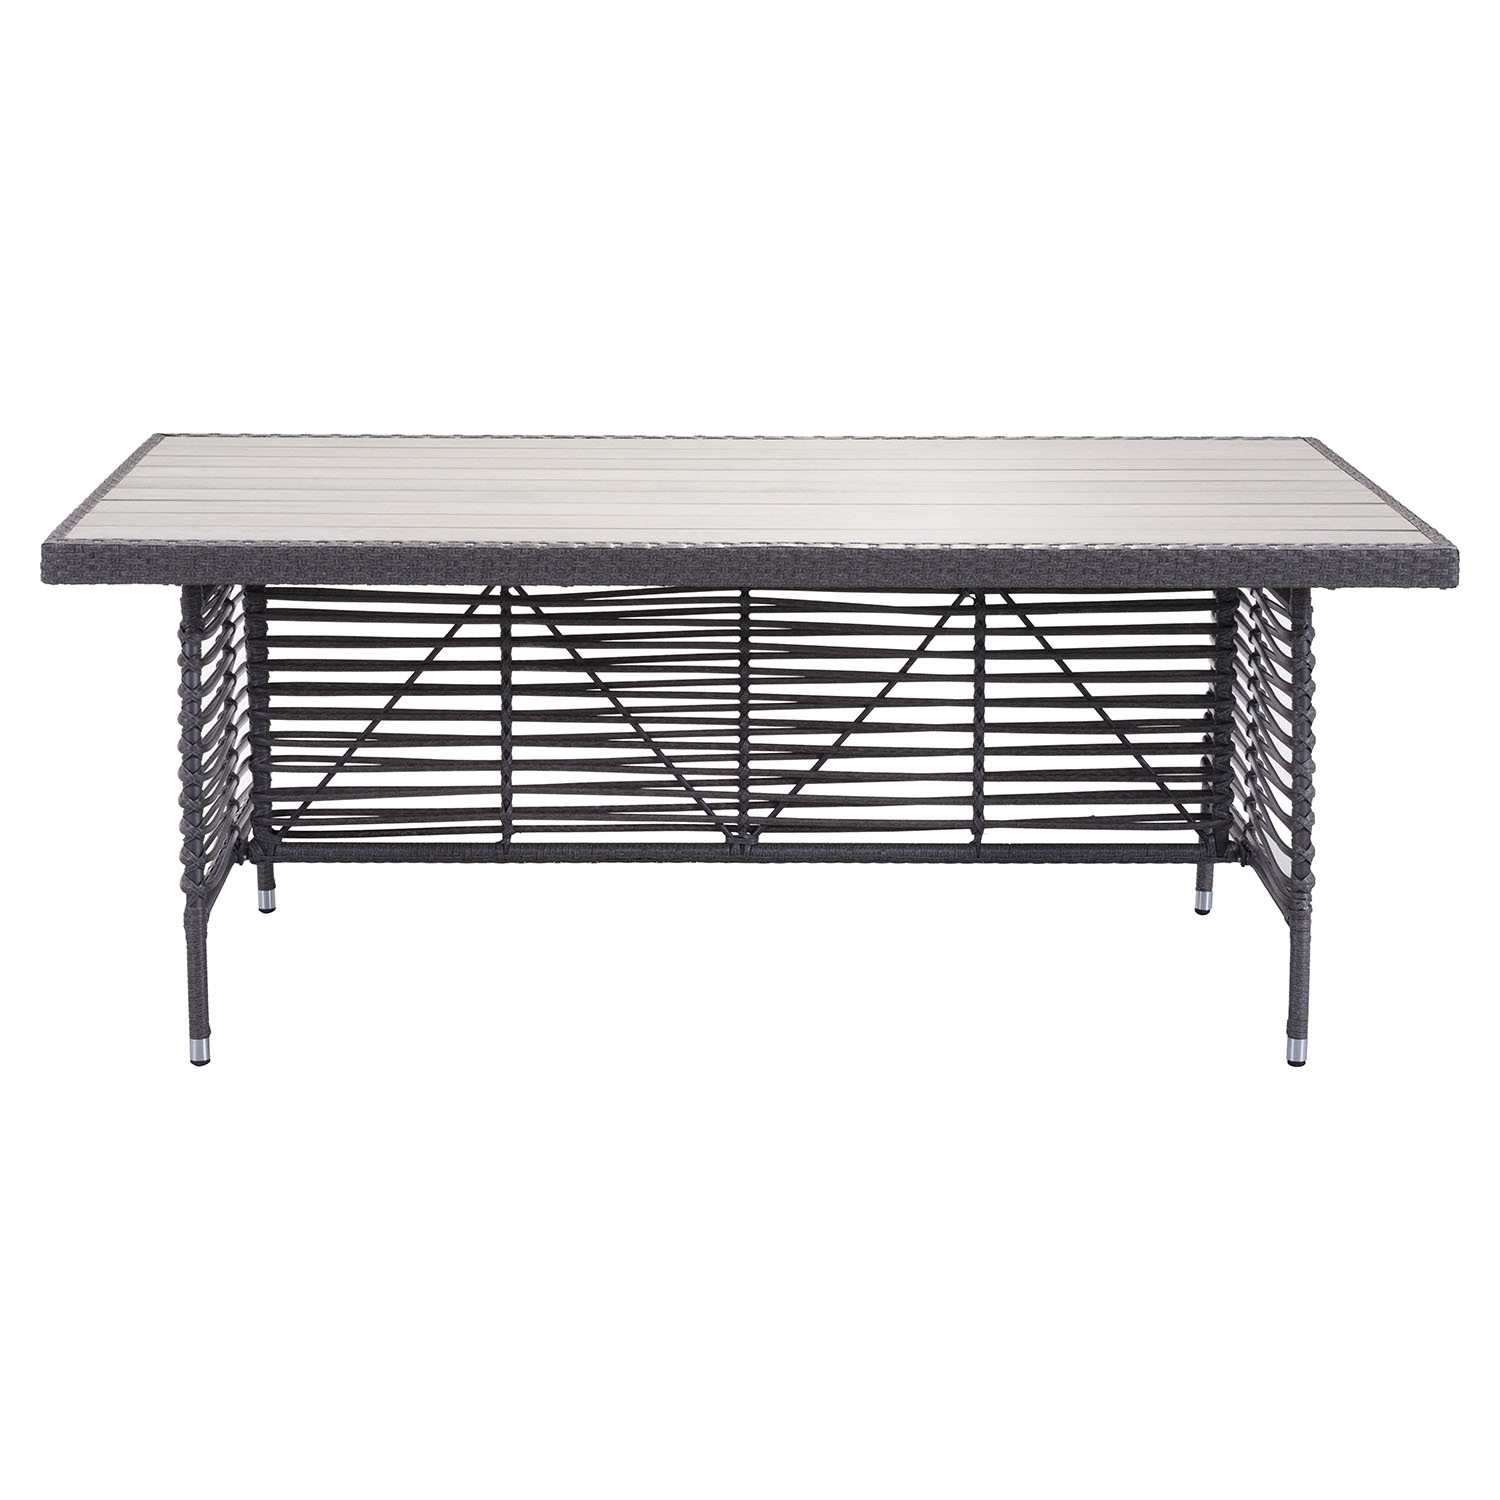 Sandbanks Gray Dining Table - ZM-703533